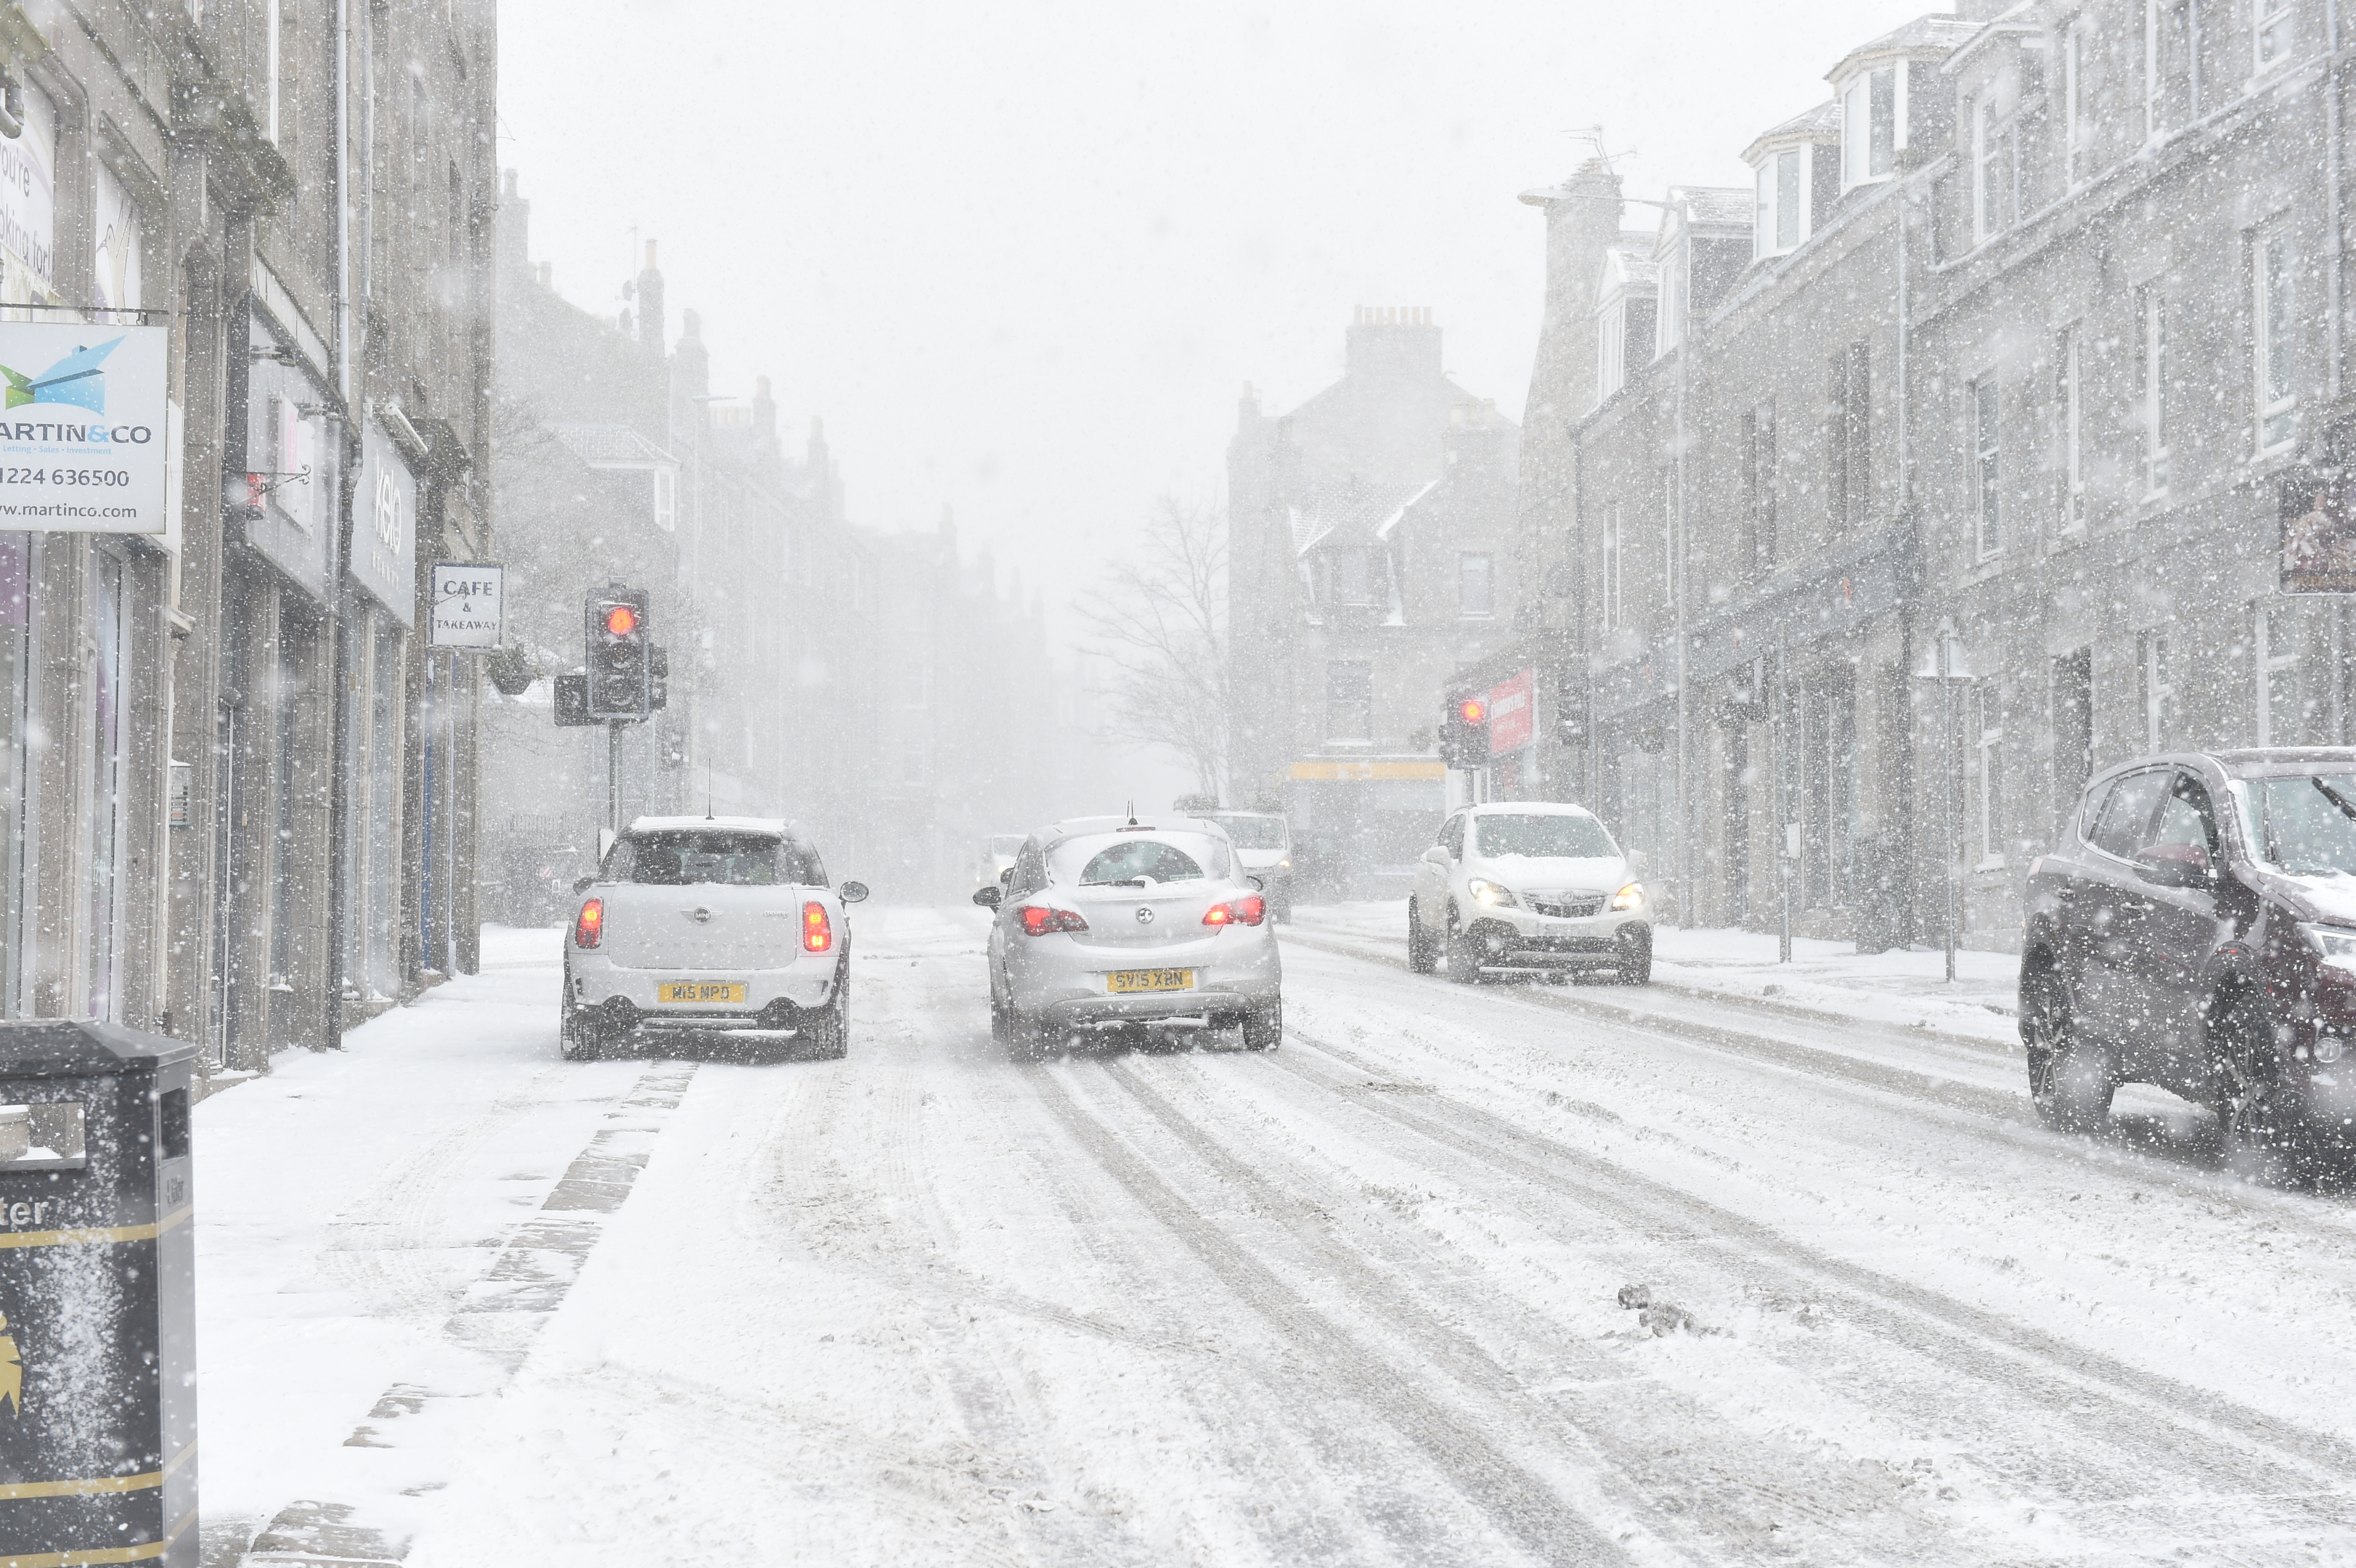 Aberdeen back on the grid after city-wide power cuts.